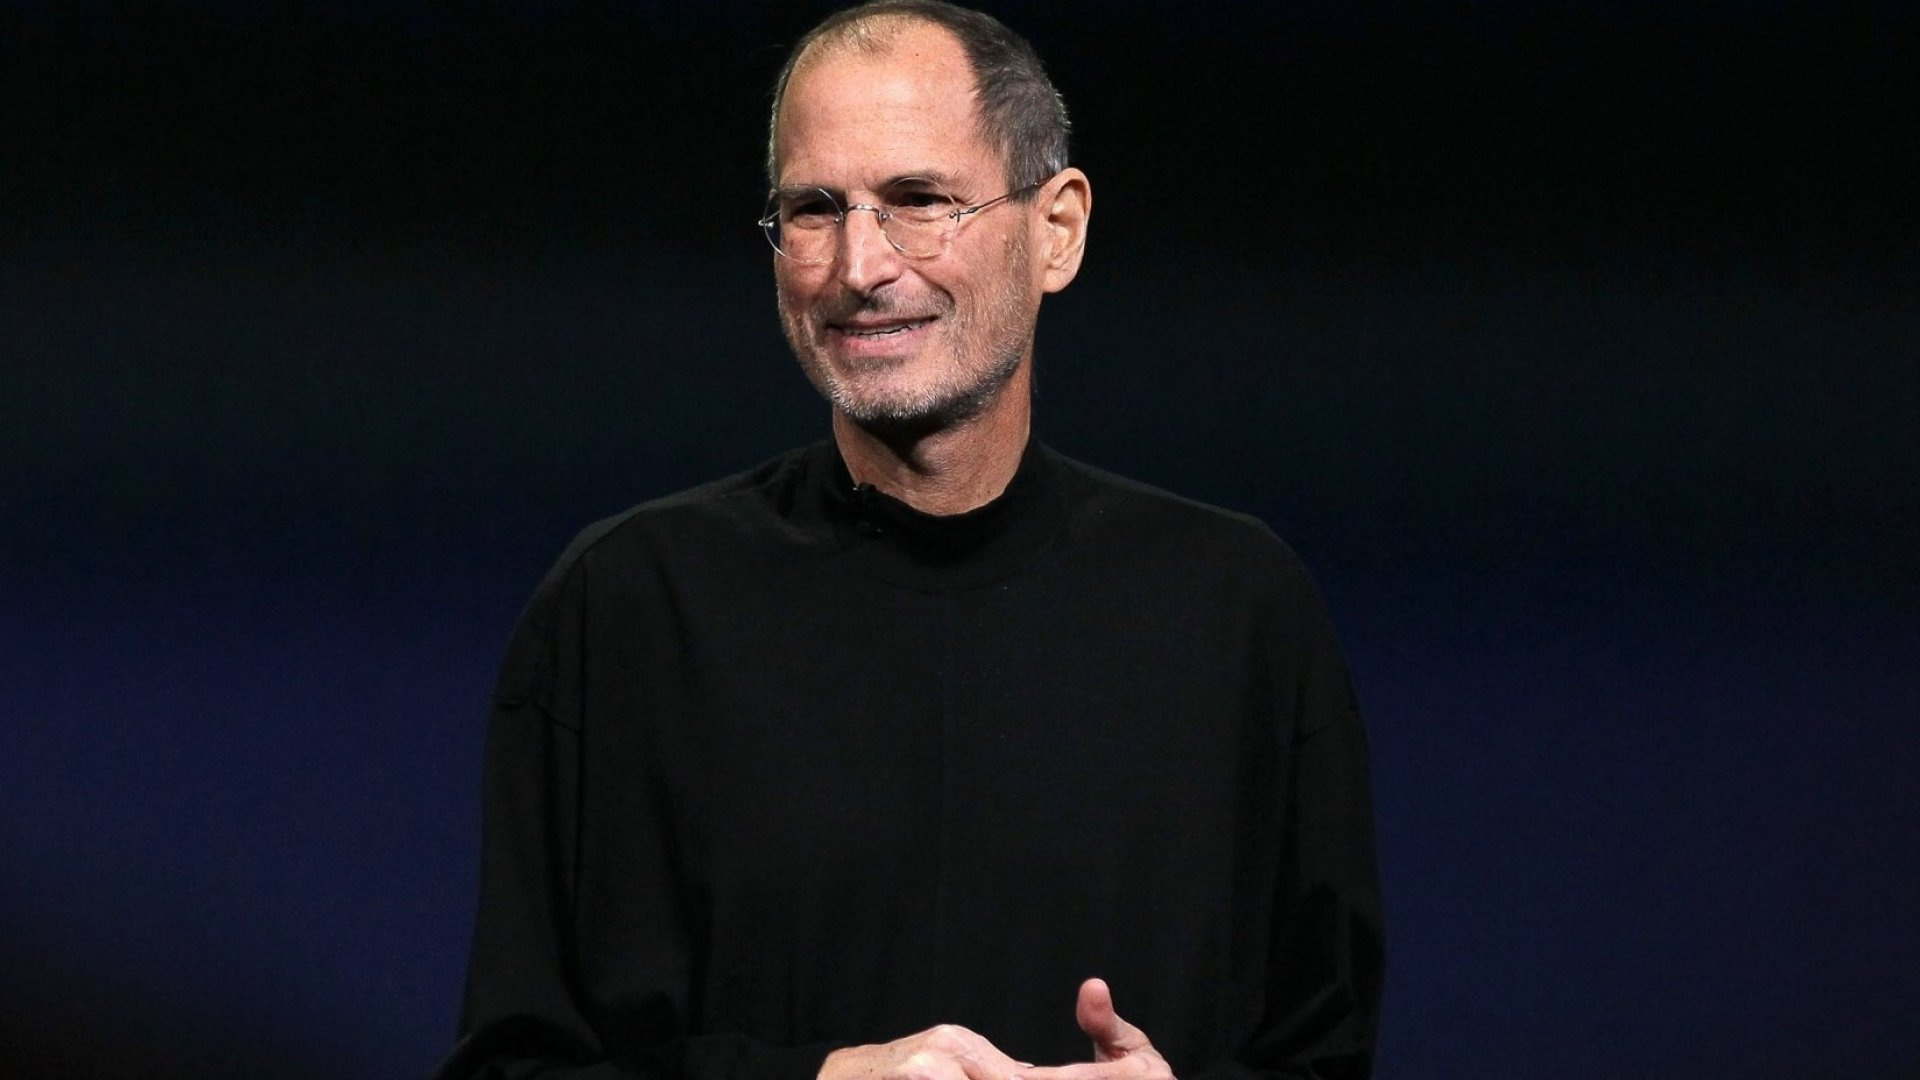 14 Books That Influenced Steve Jobs